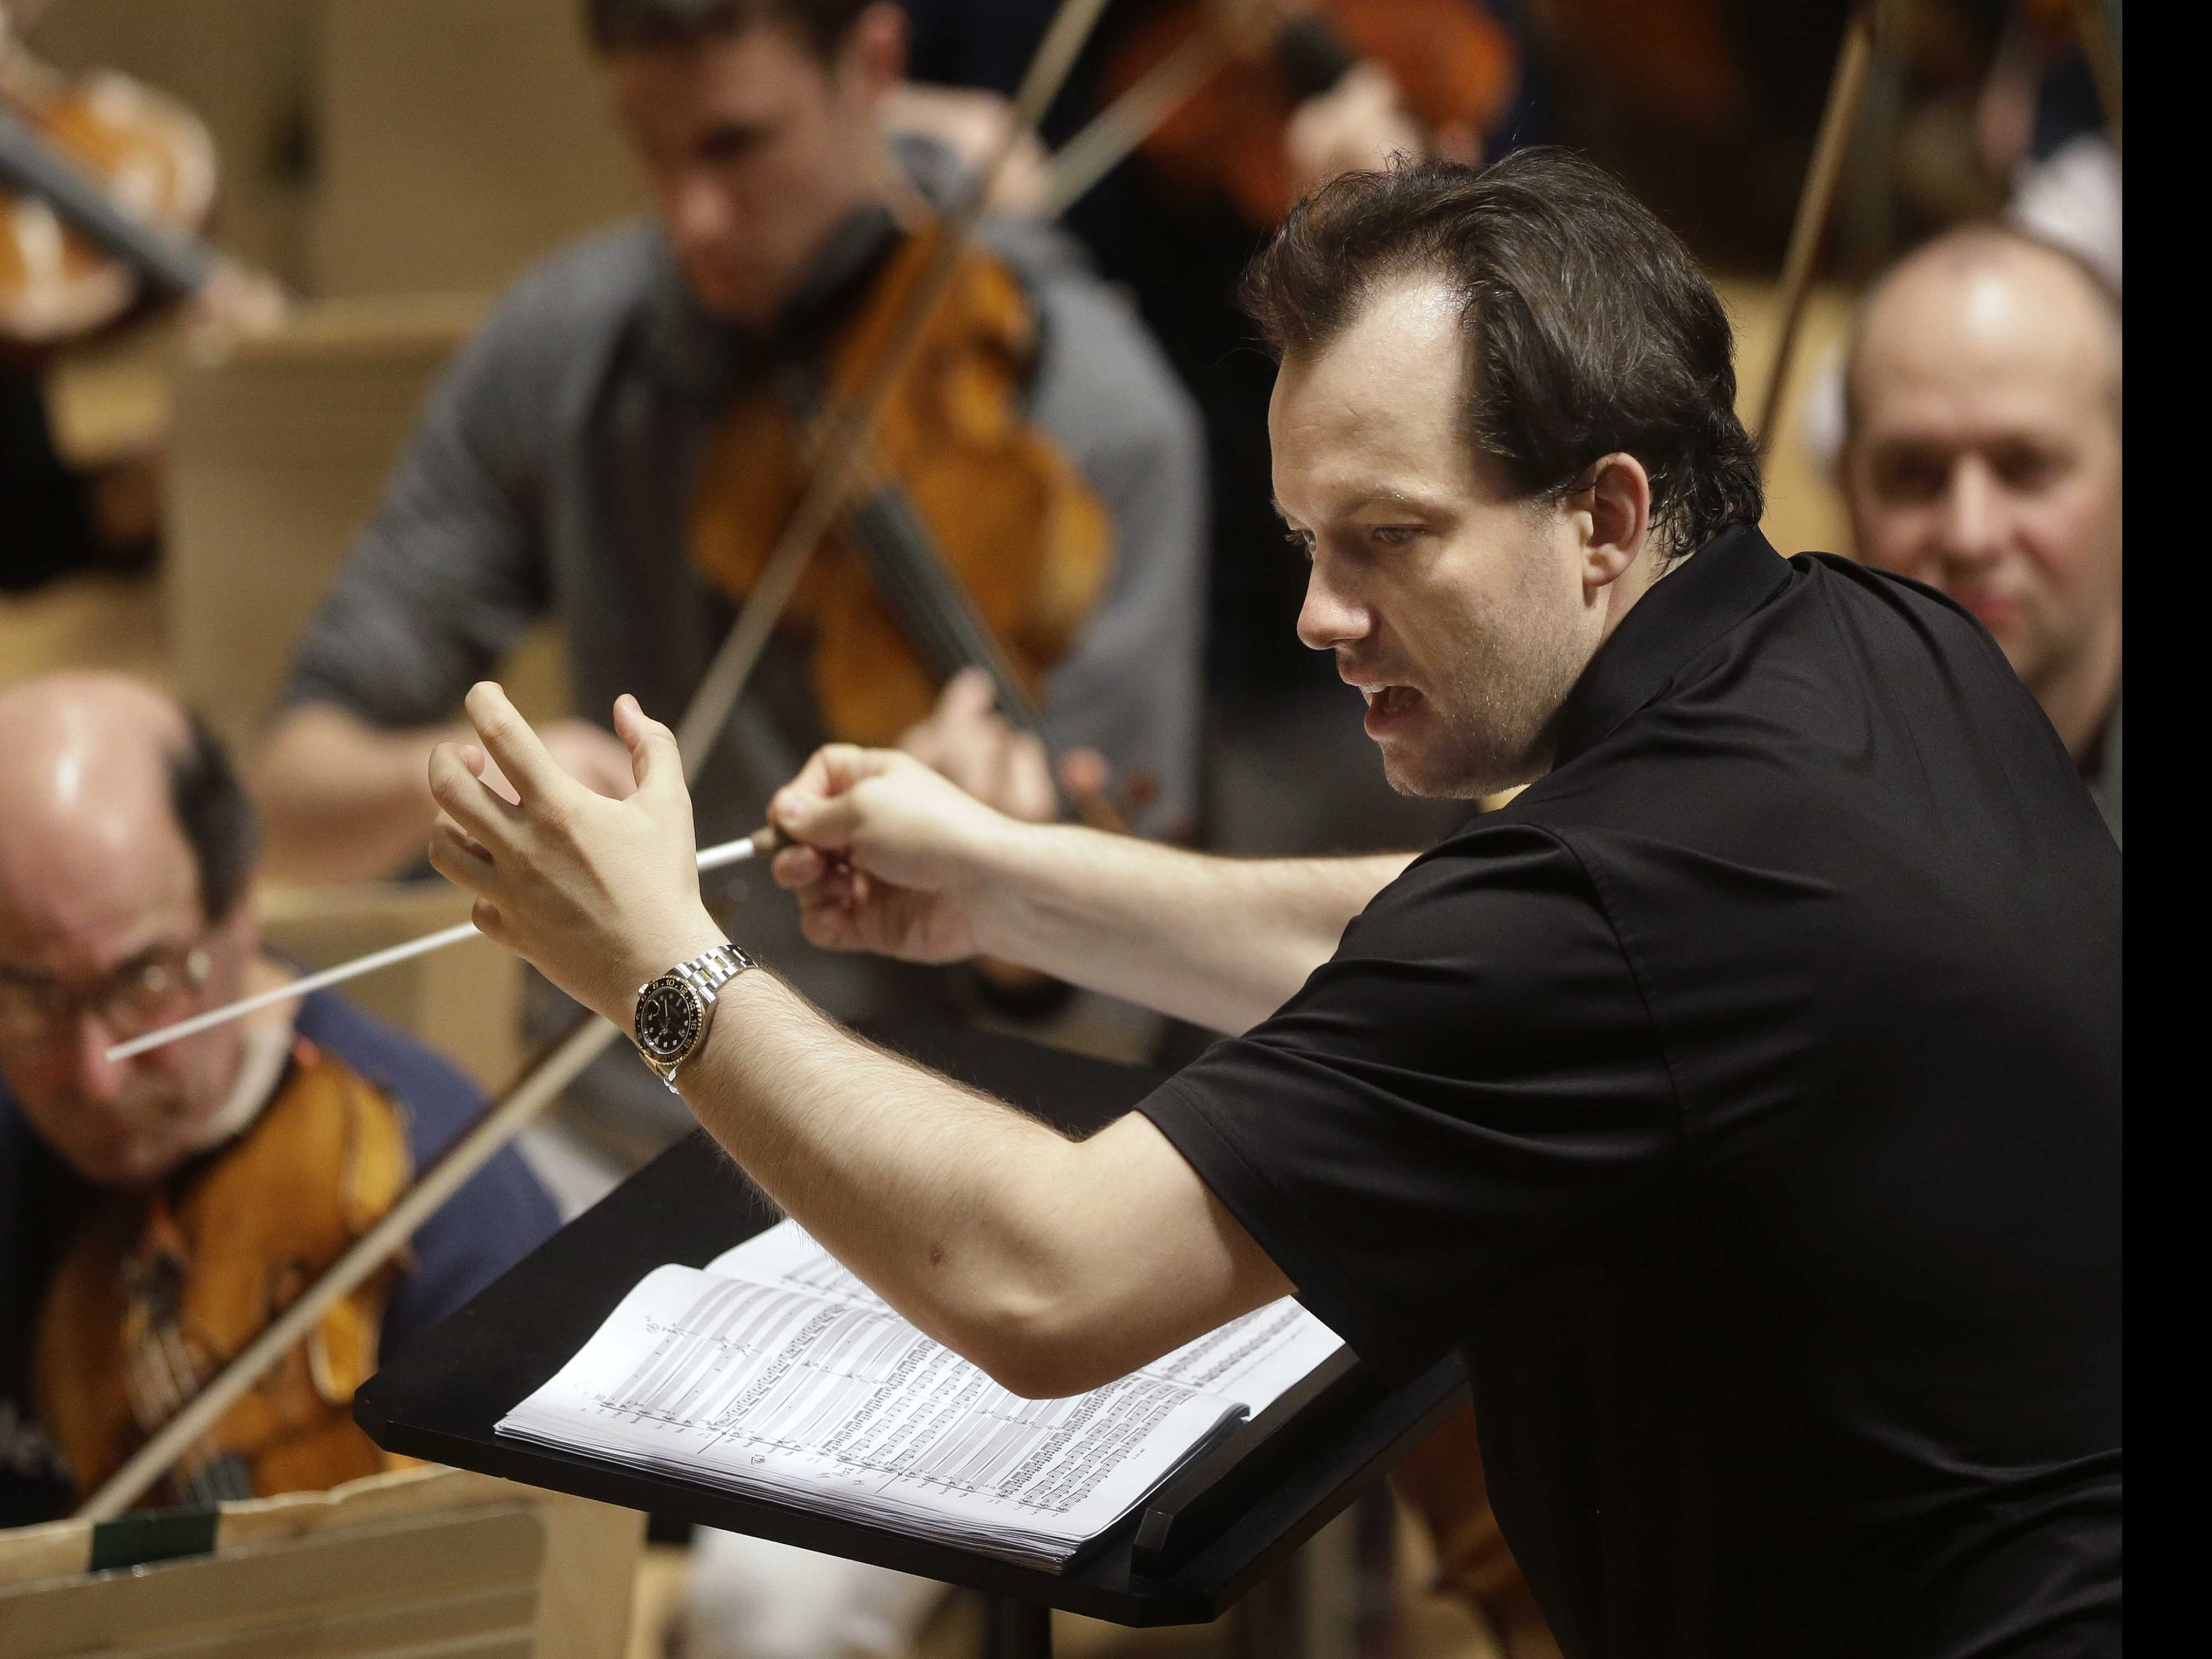 'Show Must Go On:' Stranded In Europe, Orchestra Improvises